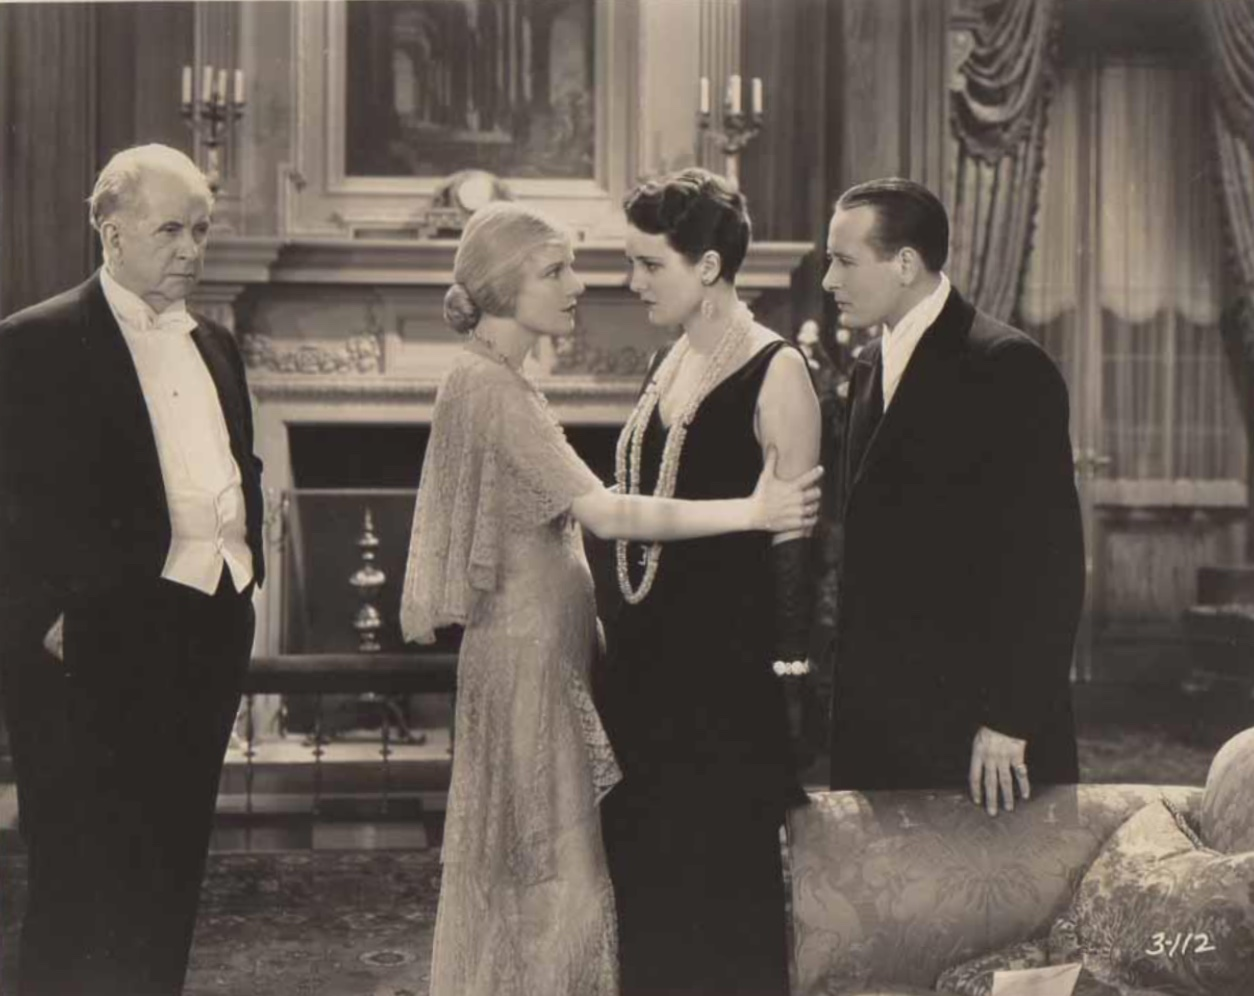 Mary Astor, Ann Harding, William Holden, and Monroe Owsley in Holiday (1930)